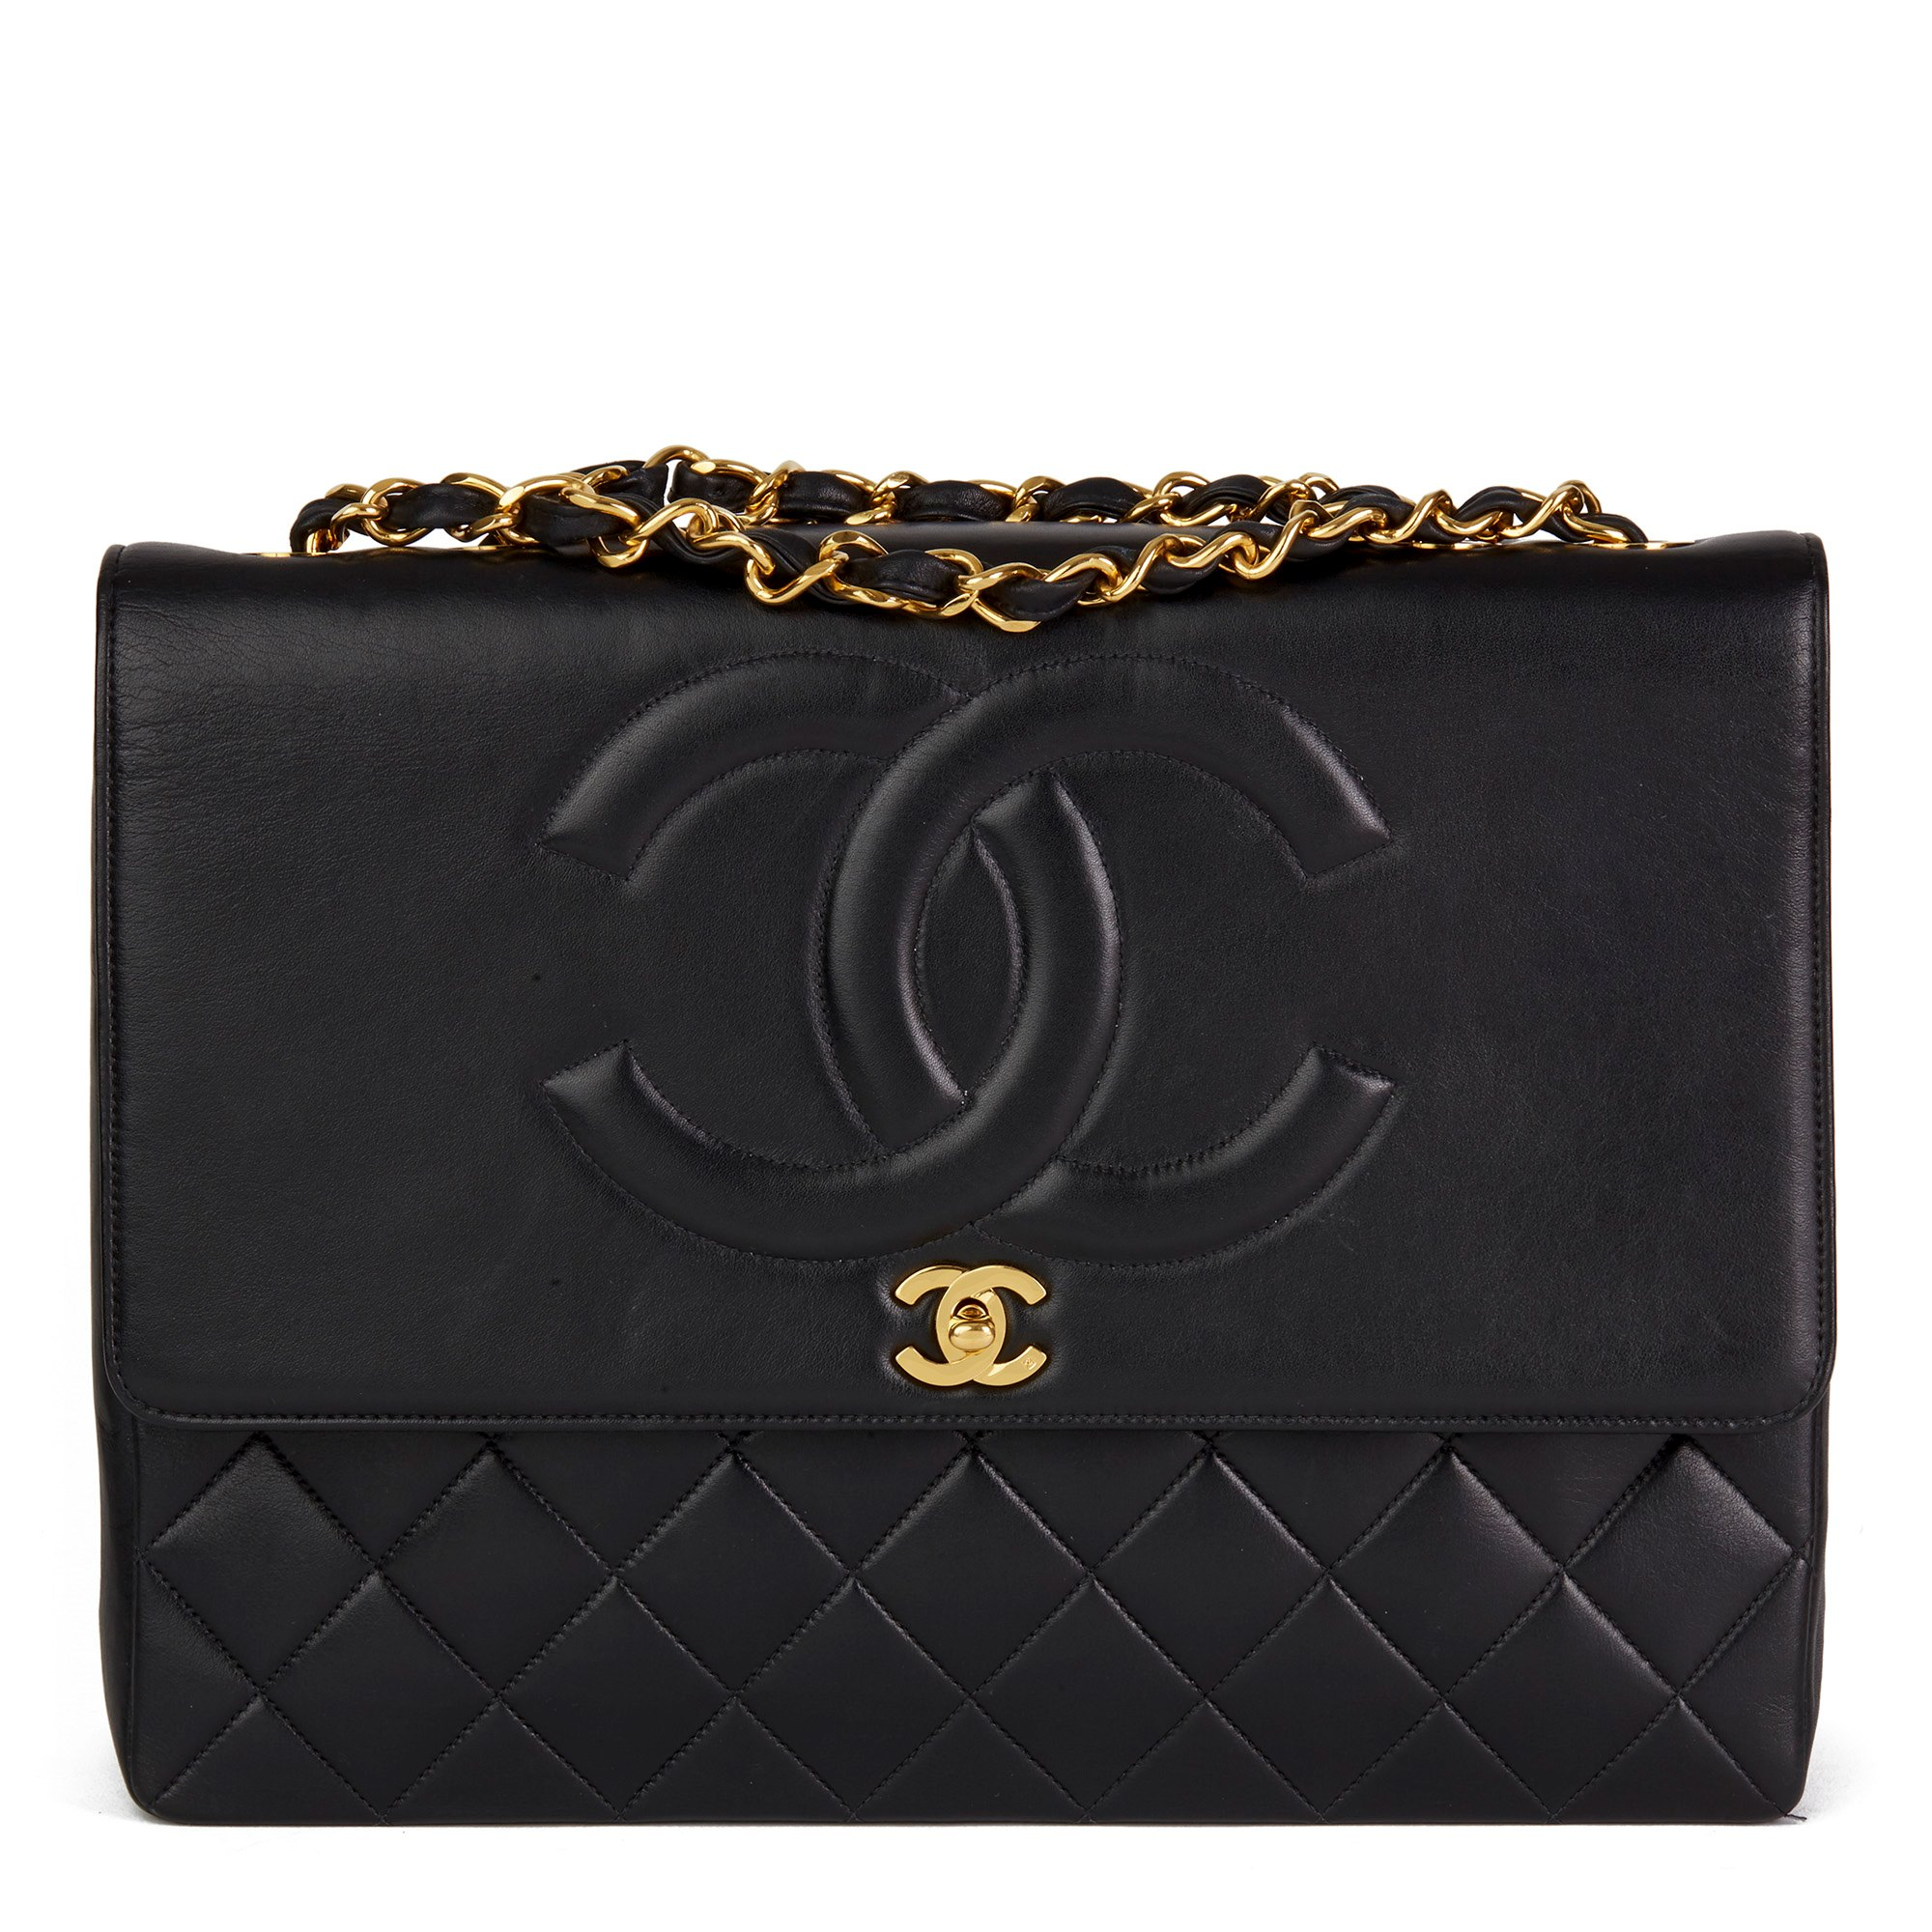 Chanel Black Quilted Lambskin Vintage Jumbo XL CC Flap Bag